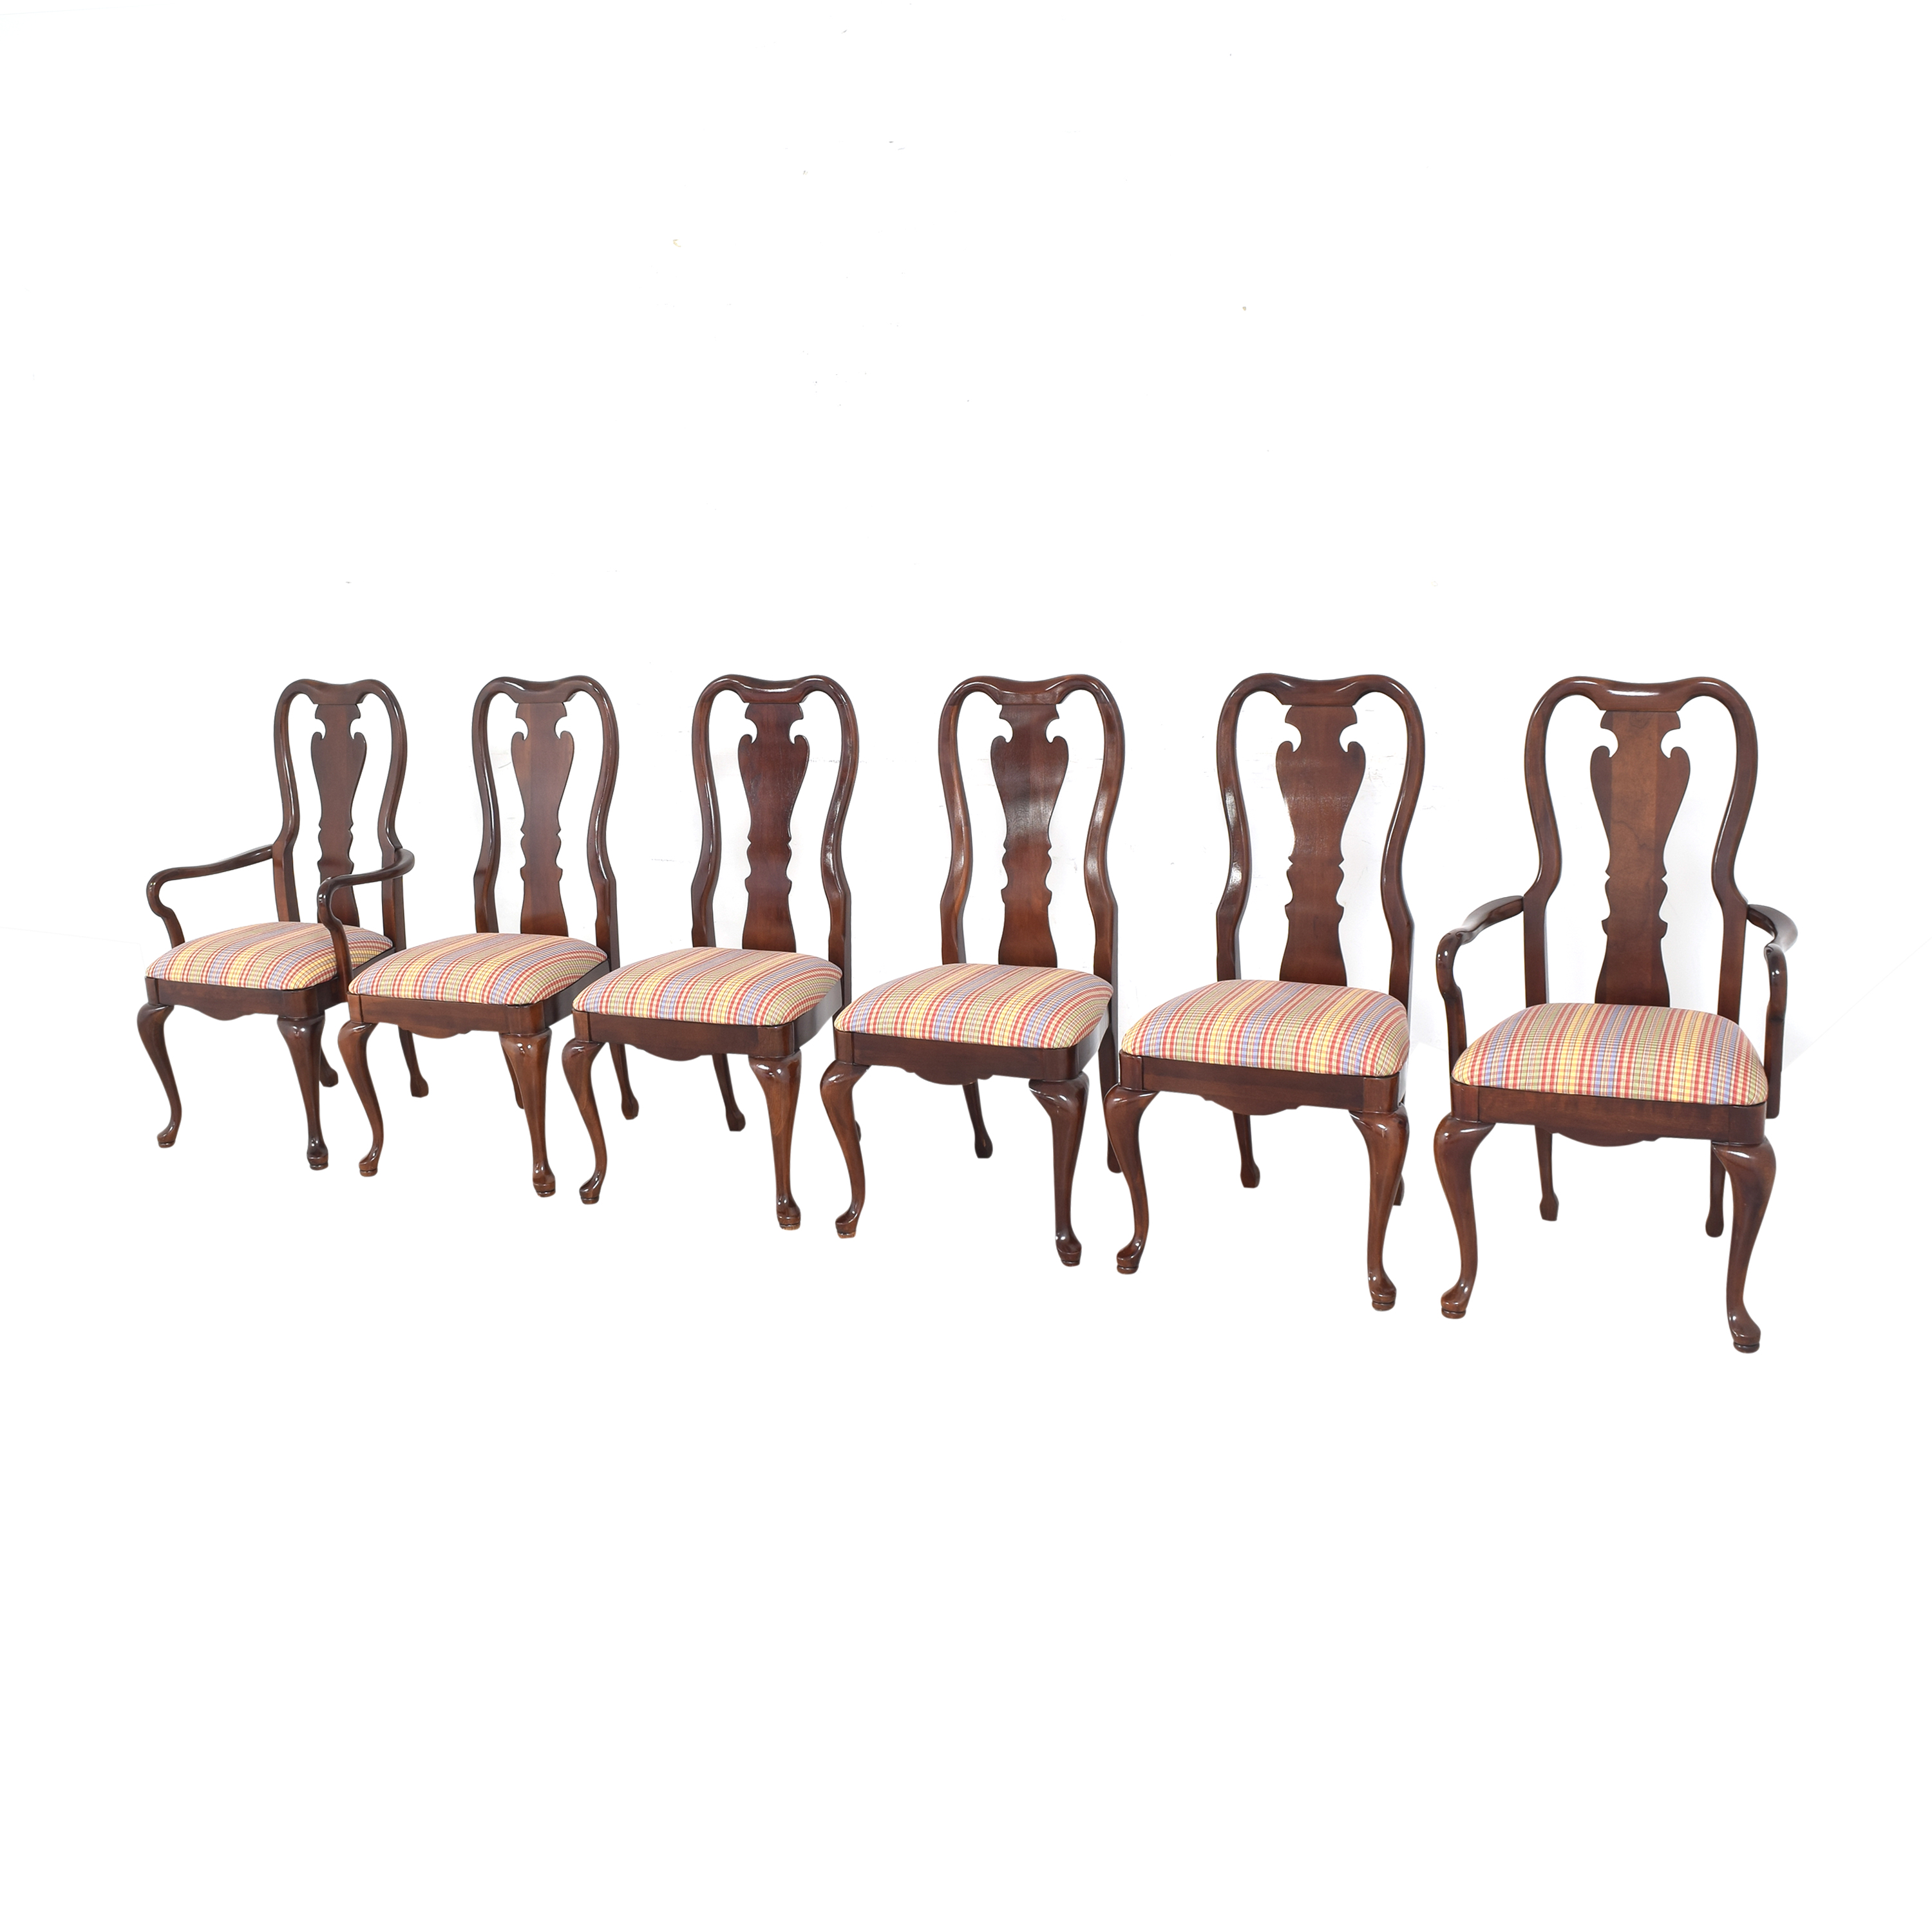 buy Thomasville Queen Anne Dining Chairs Thomasville Dining Chairs